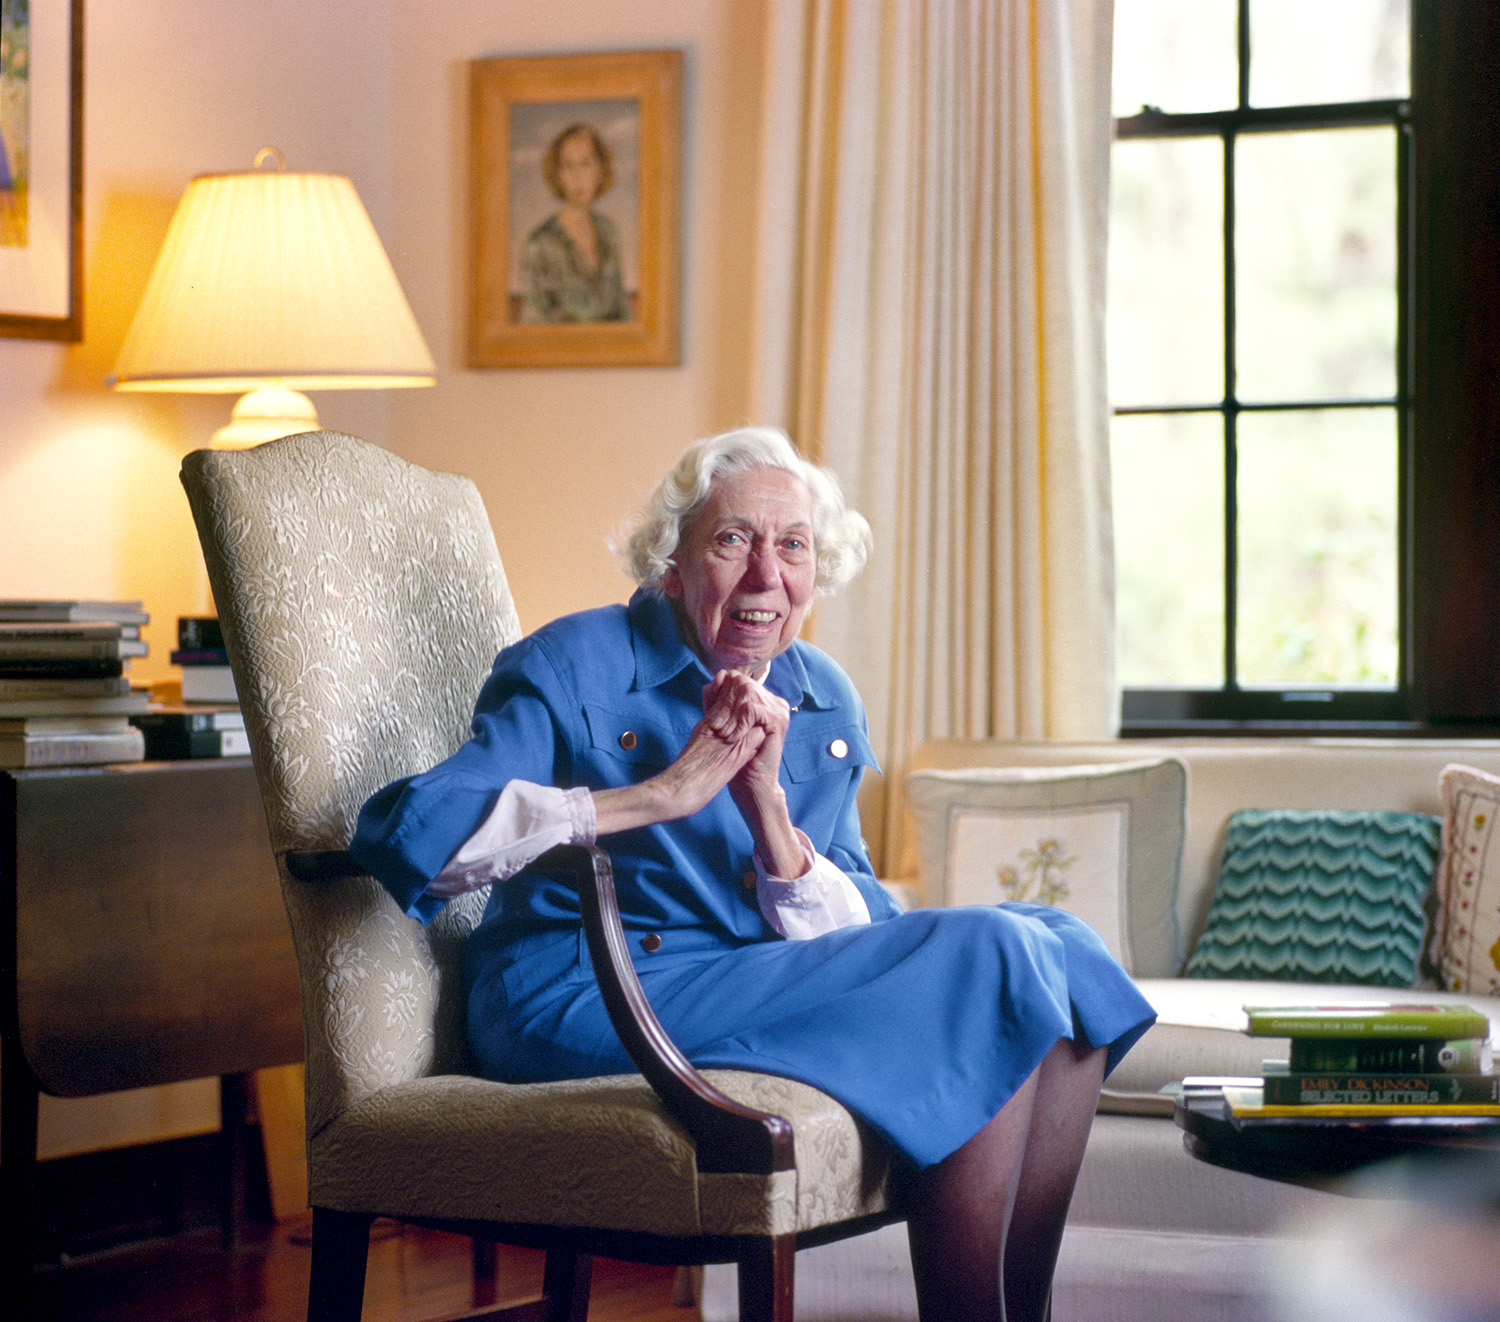 Eudora Welty, Writer 1988 - A short story writer and novelist who wrote about the American South. Welty won the Pulitzer Prize in 1973. Photographed at her home in Jackson, Mississippi in the summer of 1988.